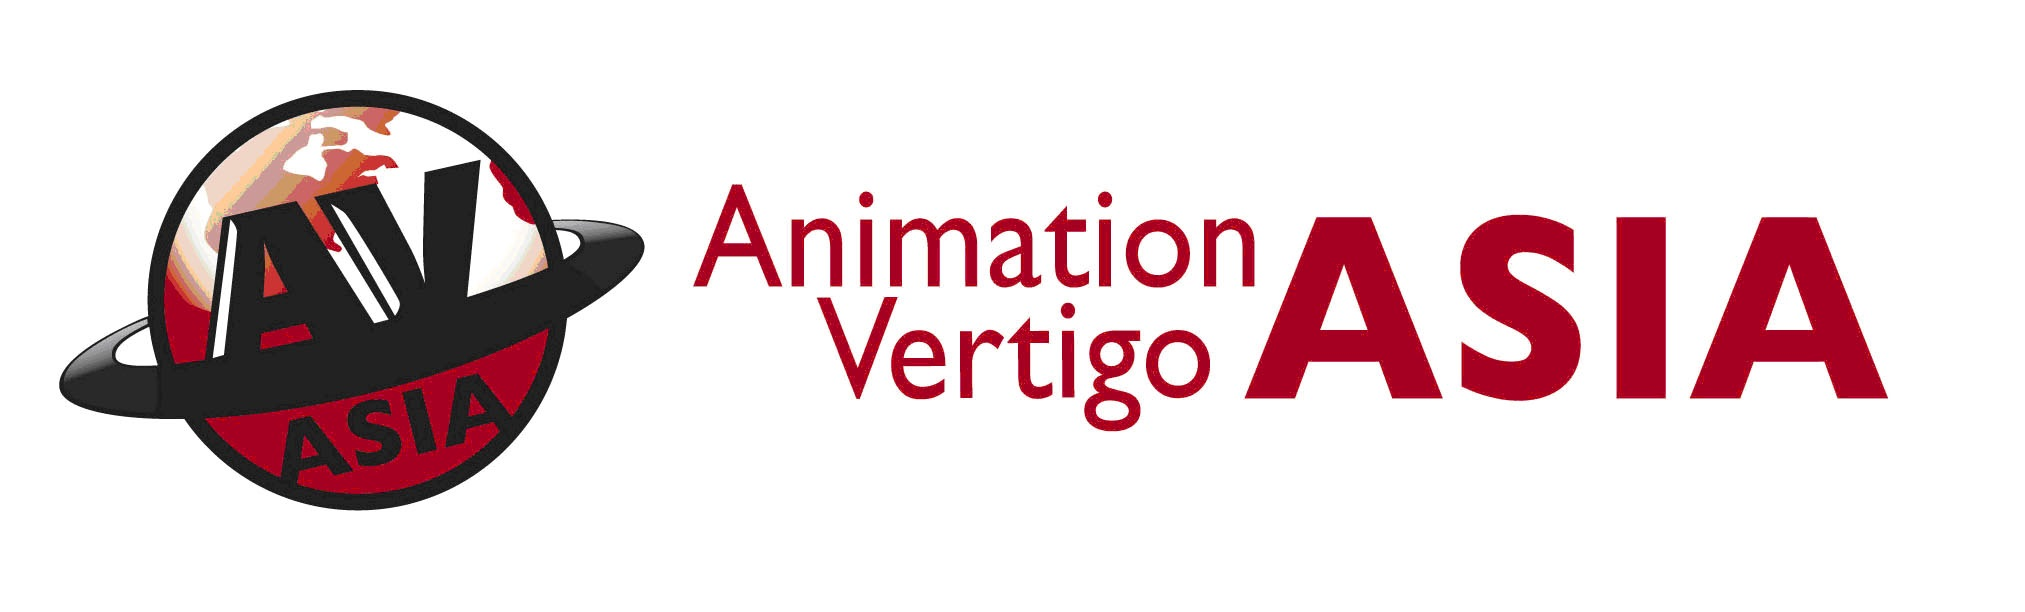 Animation Vertigo Asia, Inc.